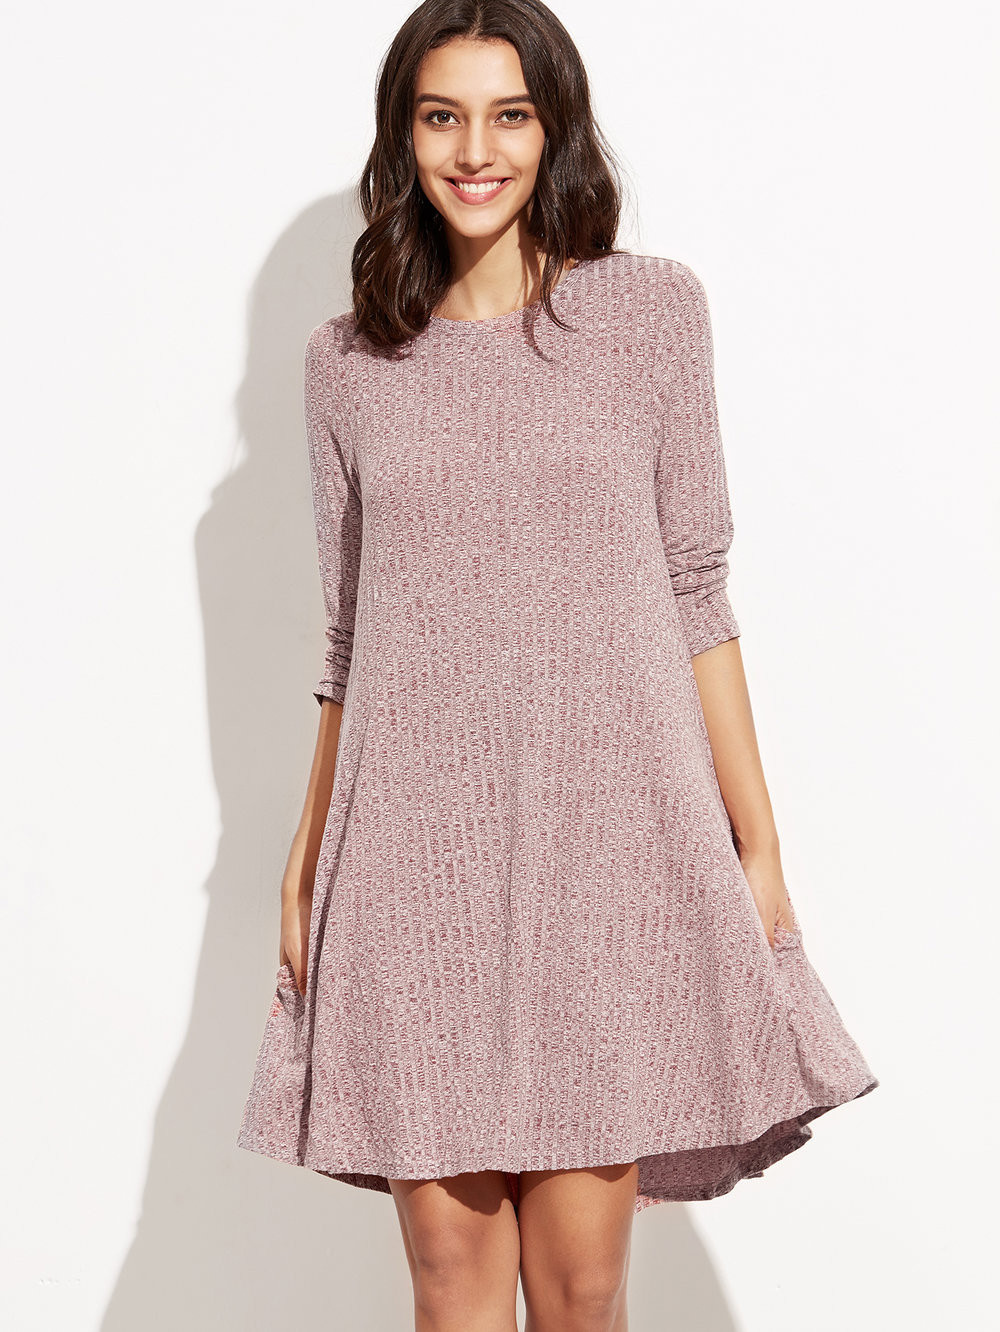 SheIn Burgundy Knit Dress